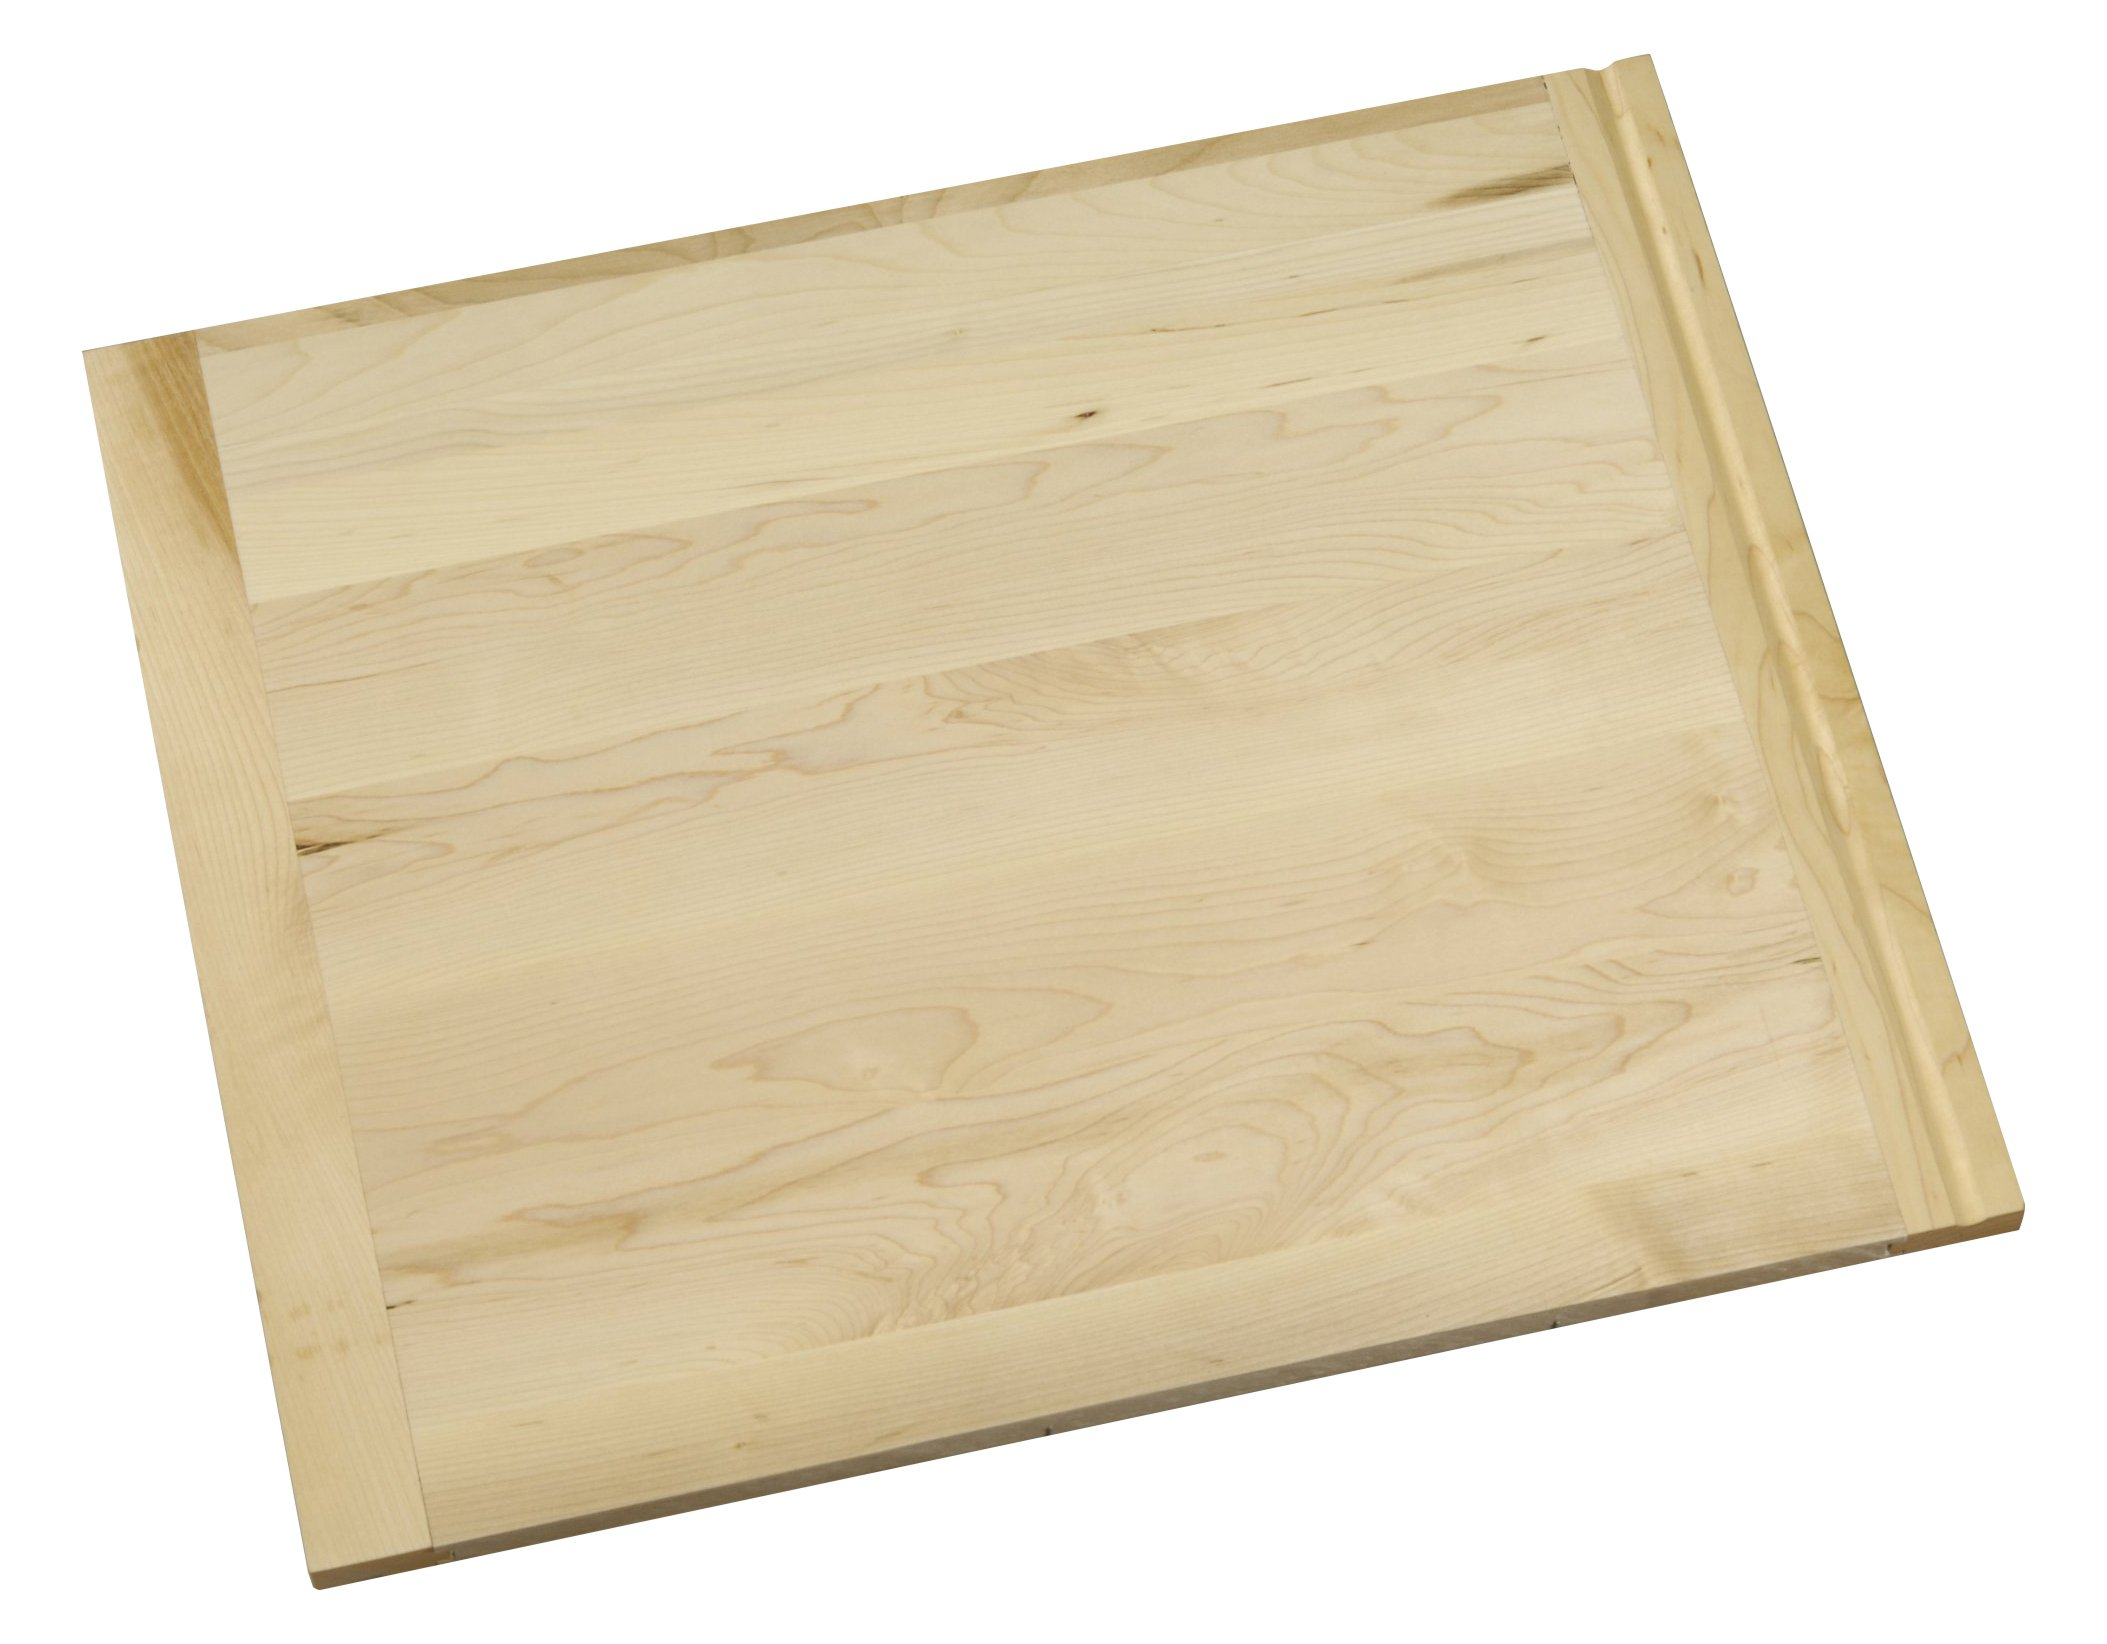 Vance 18 X 22 inch X 3/4 inch thick Hardwood Cutting Board with Routed Pull-Out, 8R1822WB